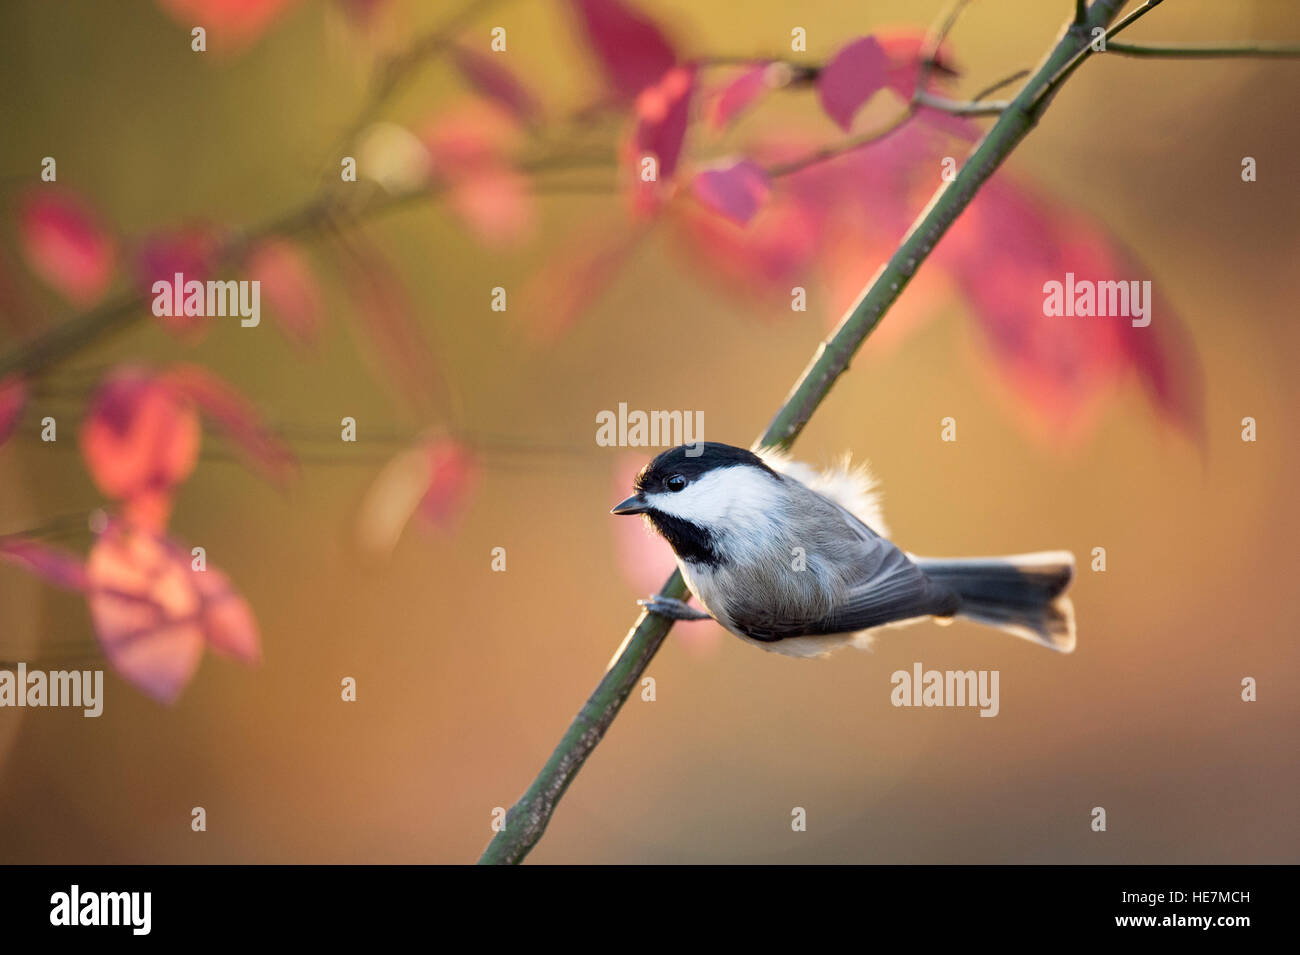 A tiny cute Carolina Chickadee perches on a branch with colorful red leaves in the background. - Stock Image